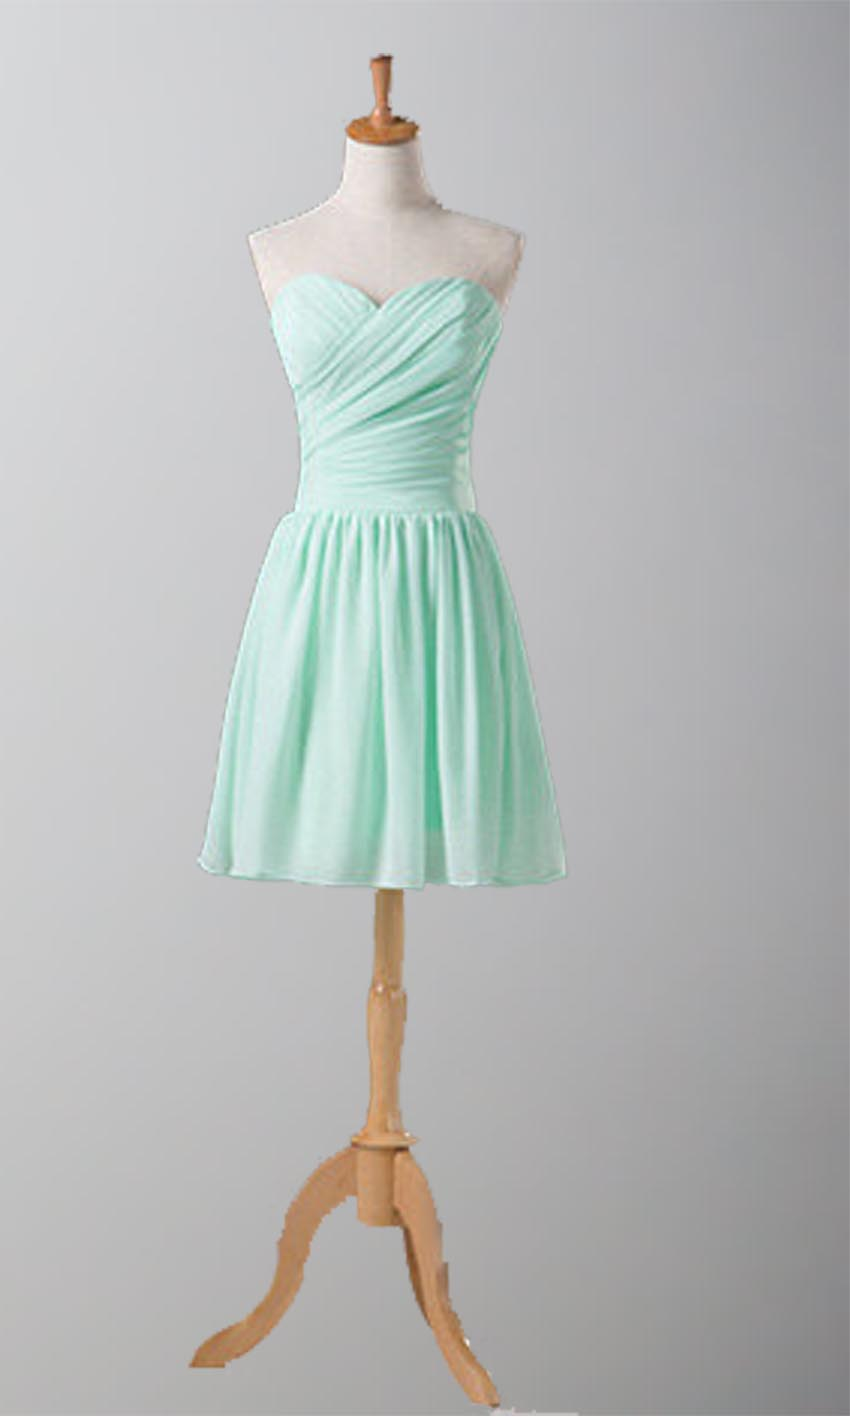 Short Cinch Waist Affordable Bridesmaid Dress KSP267 [KSP267] - £80.00 : Cheap Prom Dresses Uk, Bridesmaid Dresses, 2014 Prom & Evening Dresses, Look for cheap elegant prom dresses 2014, cocktail gowns, or dresses for special occasions? kissprom.co.uk offers various bridesmaid dresses, evening dress, free shipping to UK etc.